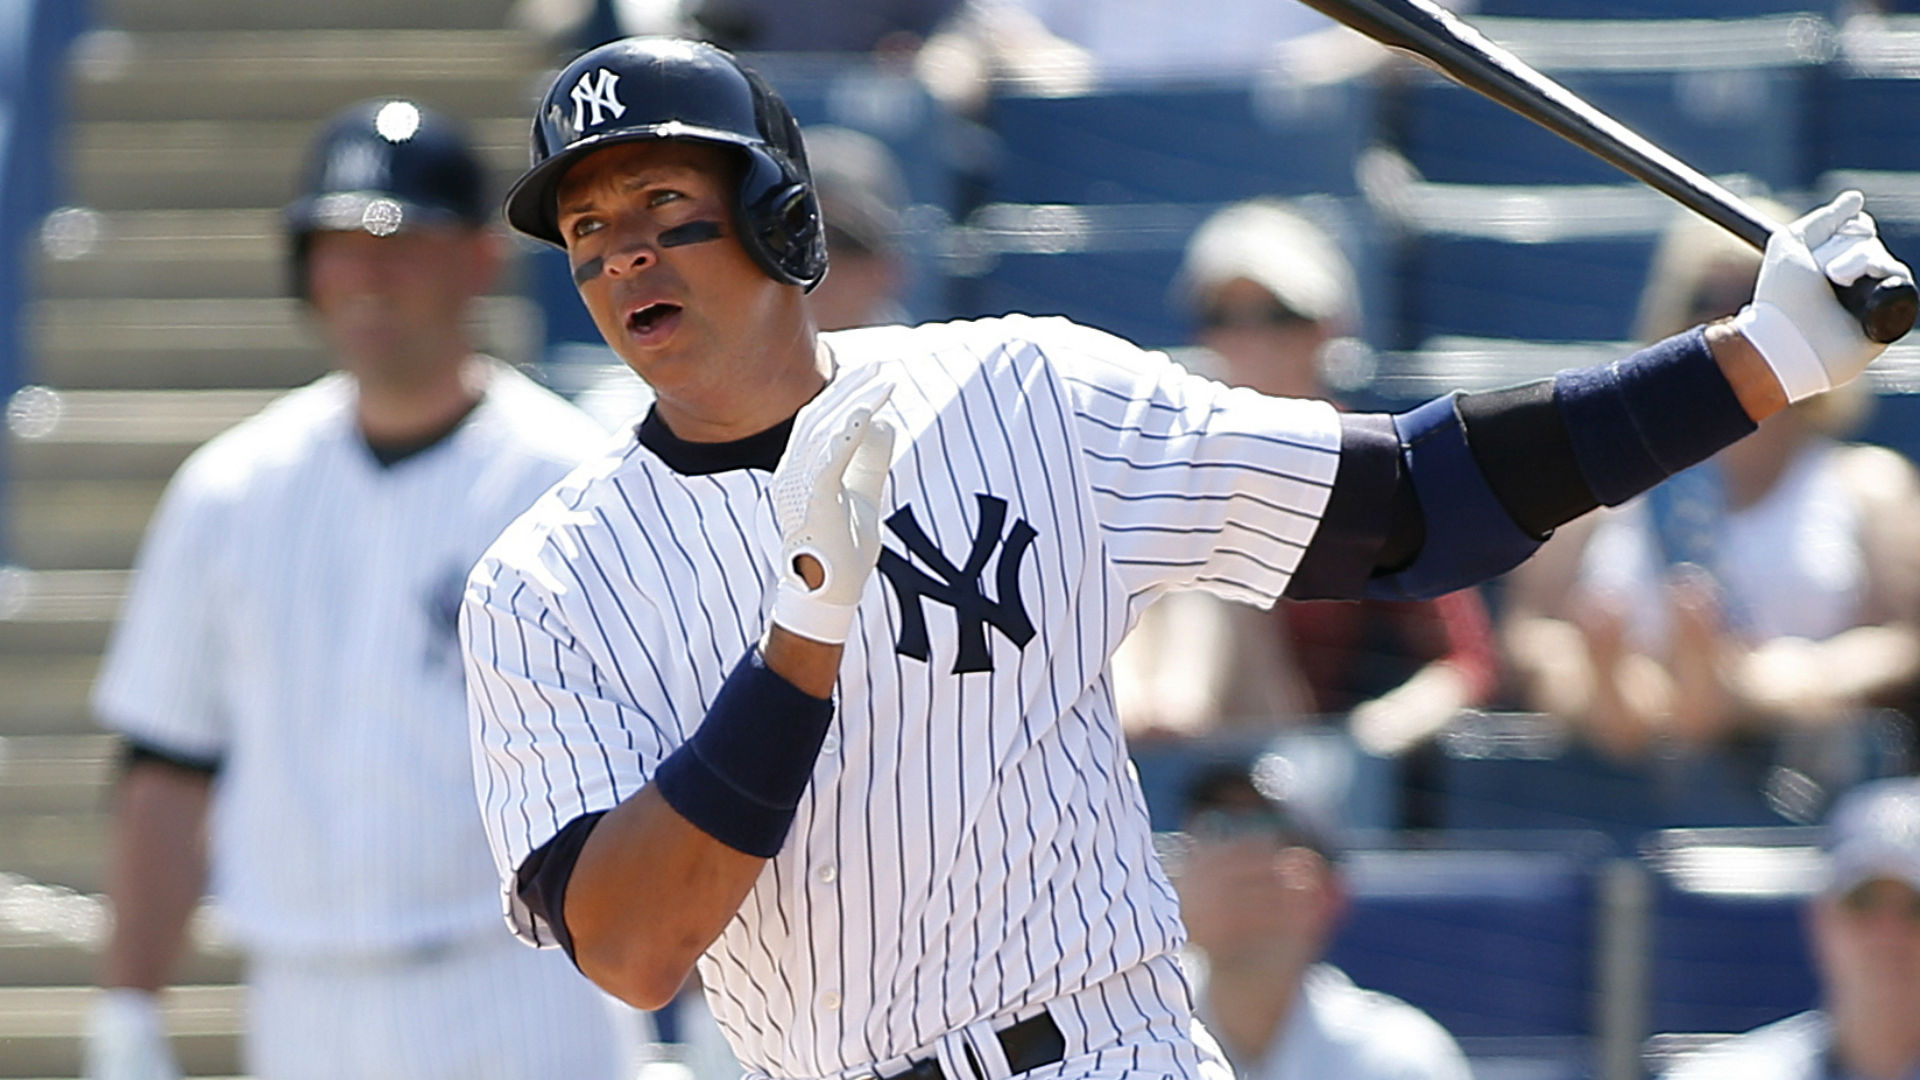 A-Rod coy about his 660th home run